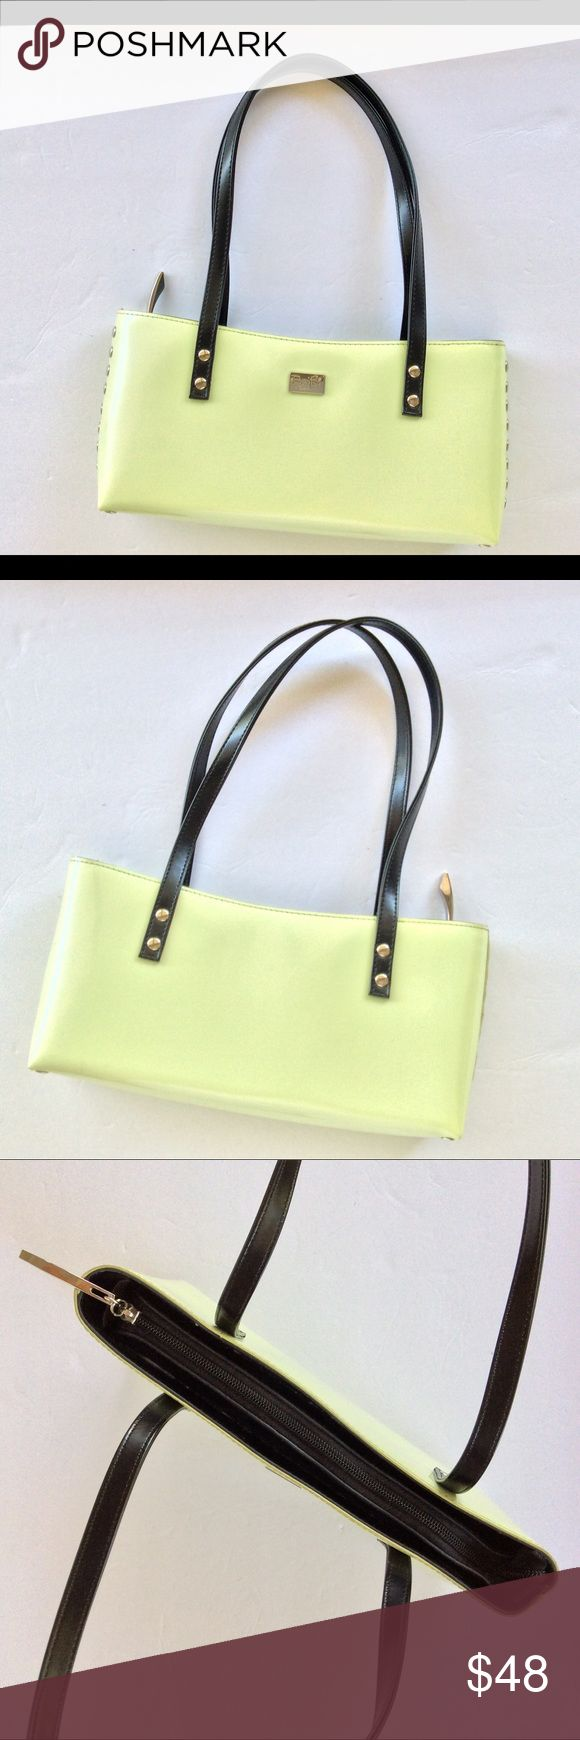 """Beijo Shoulder Bag Lime Green Leather EUC Beijo lime green shoulder bag.  This bag is adorable.  Sturdy black handles with silver hardware dots on sides and bottom.  Beijo silver tone nameplate on front.  Interior has full zippered pocket and two accessory punches.  Also has key ring attached inside.  Full zippered top.  Superb condition, no stains, marks or dents!  Bag is 11"""" long, 5"""" high.  Strap drop is 8-1/4"""" perfect for tucking under your arm. Beijo Bags Shoulder Bags"""